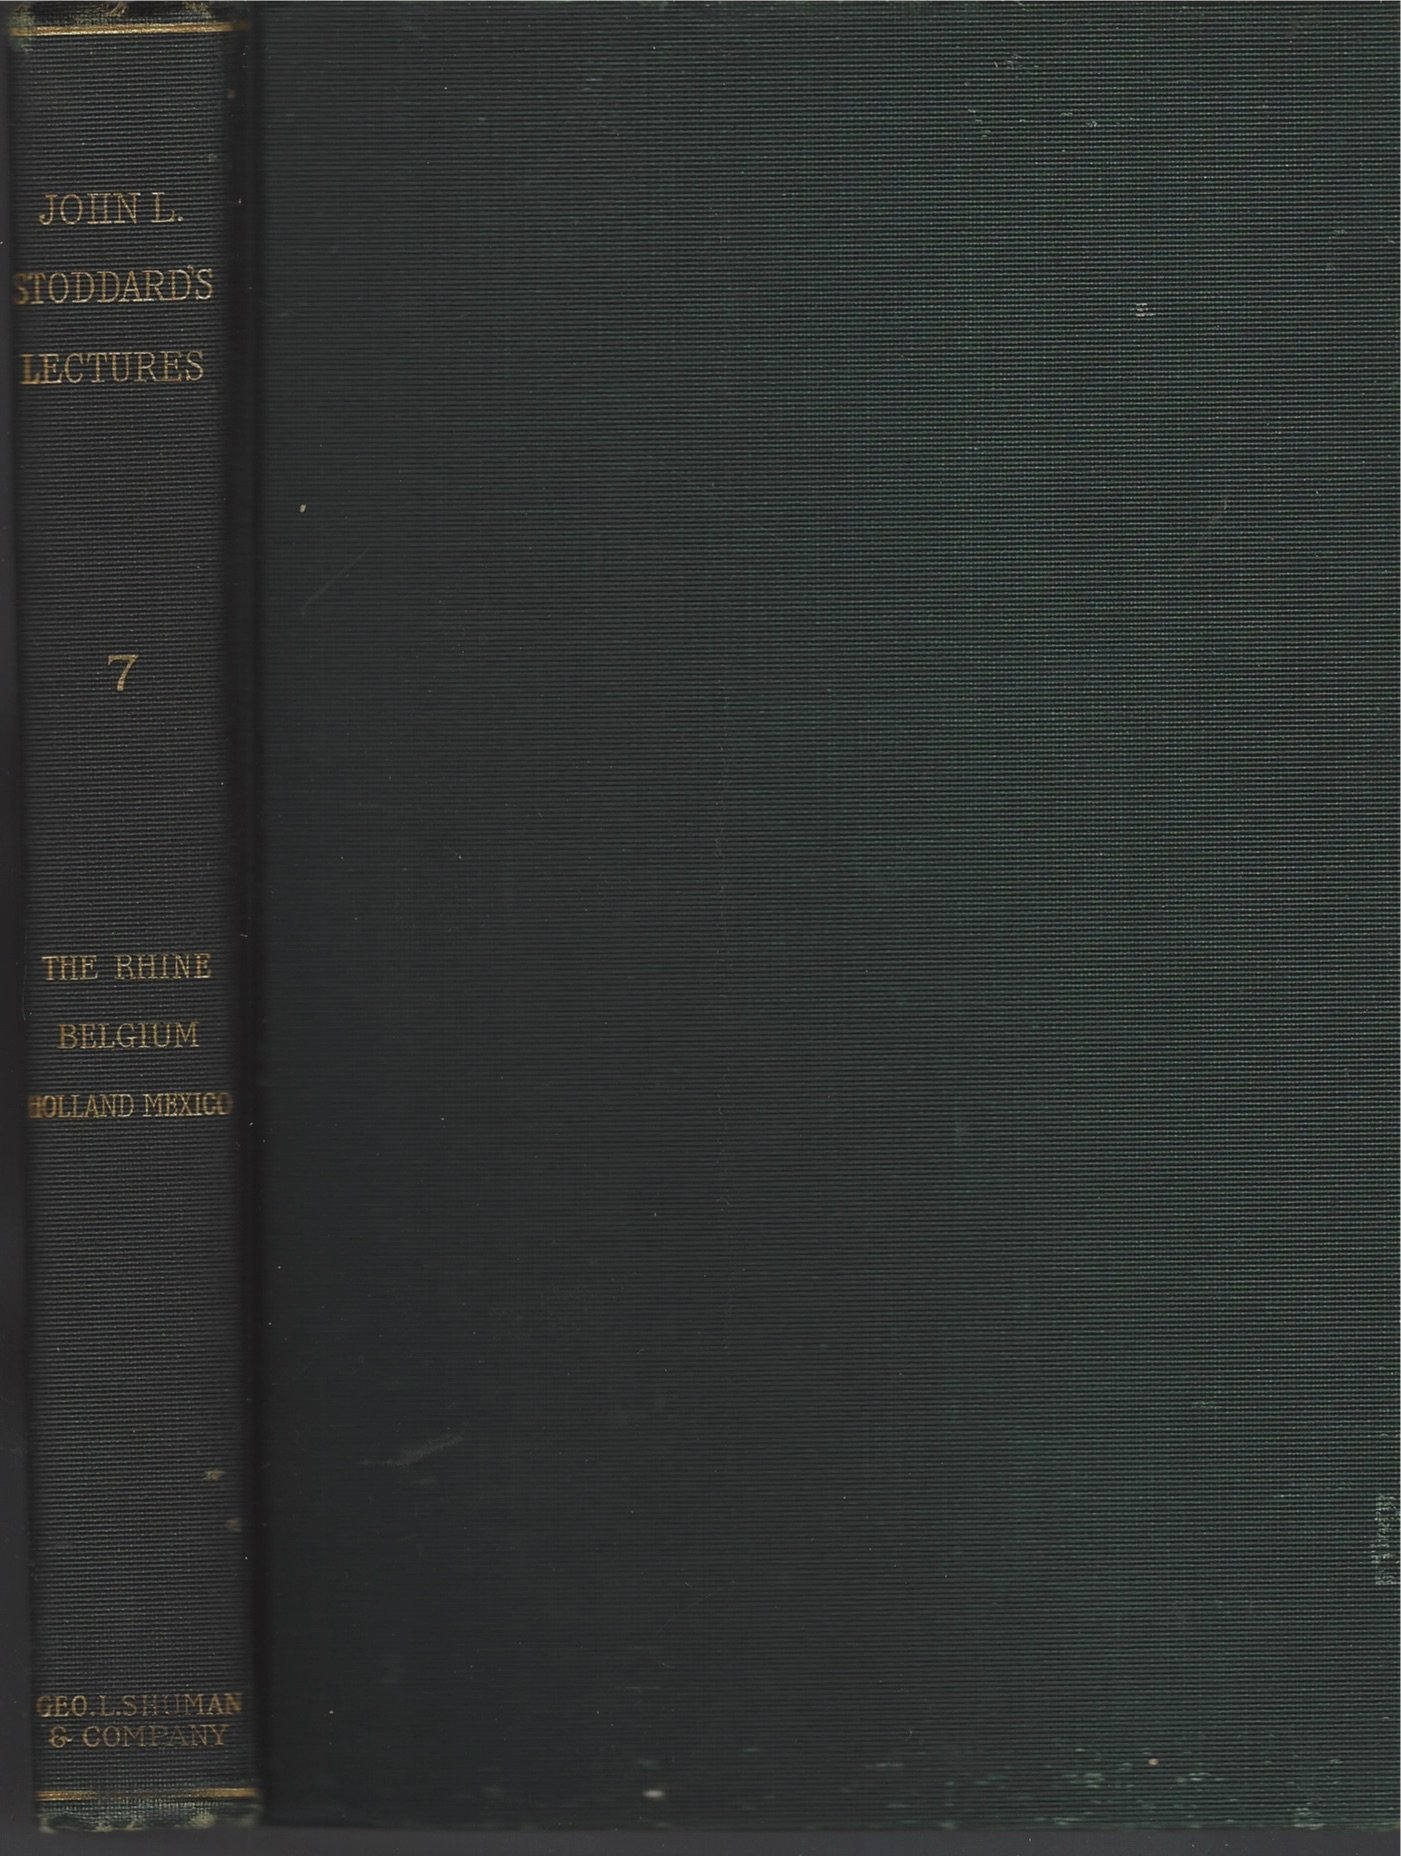 JOHN L. STODDARD'S LECTURES, VOLUME 7, COMPLETE IN TEN VOLUMES, VOLUME 7, THE RHINE BELGIUM HOLLAND MEXICO